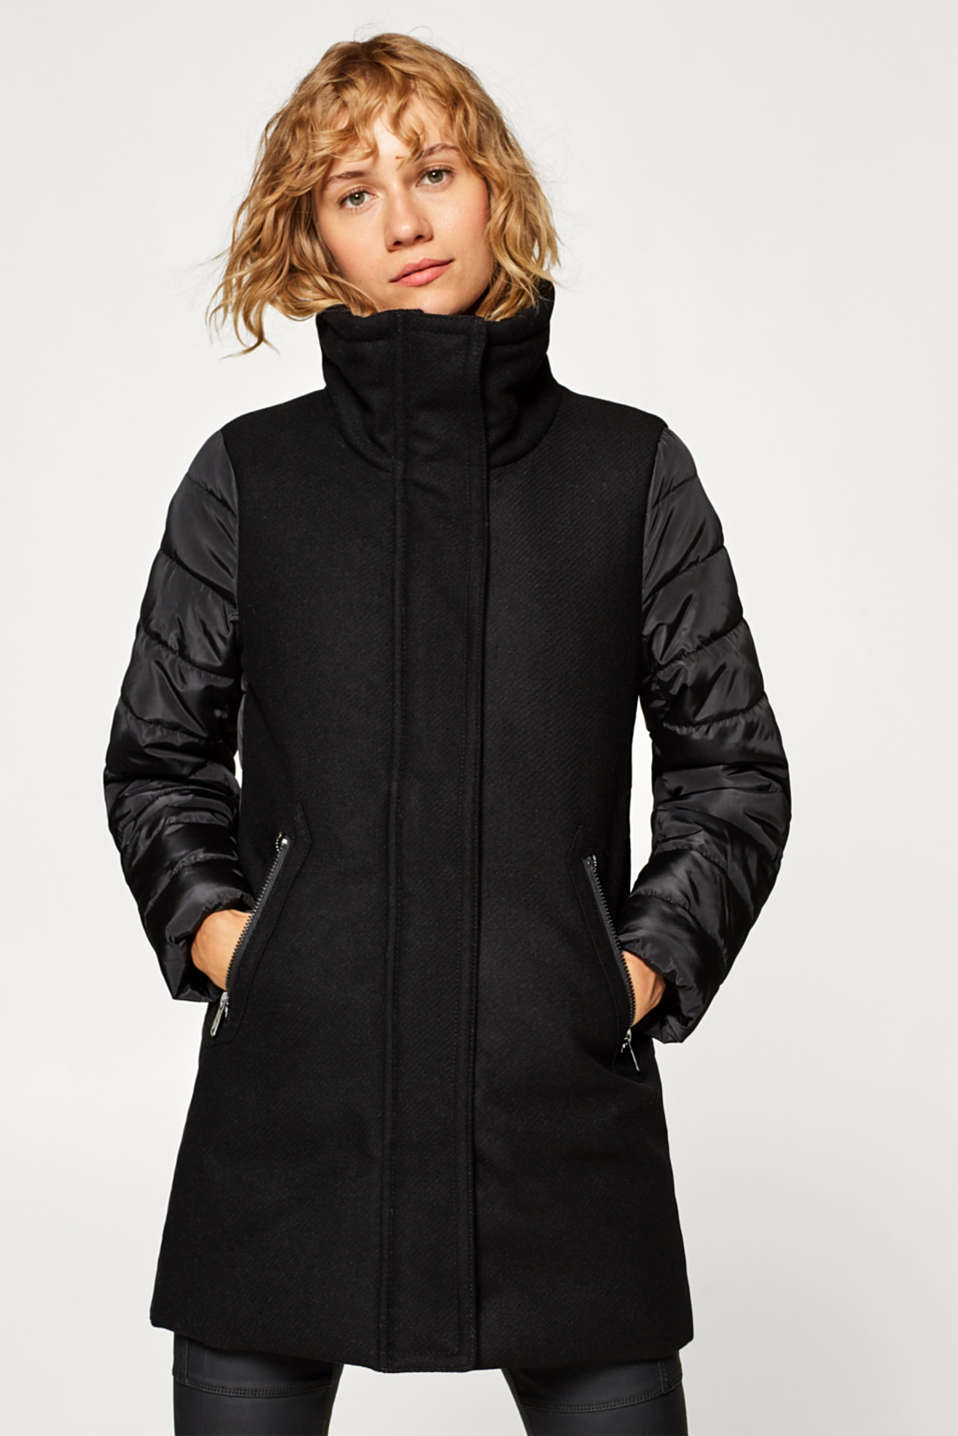 Esprit - Made of blended wool: coat with quilted sleeves